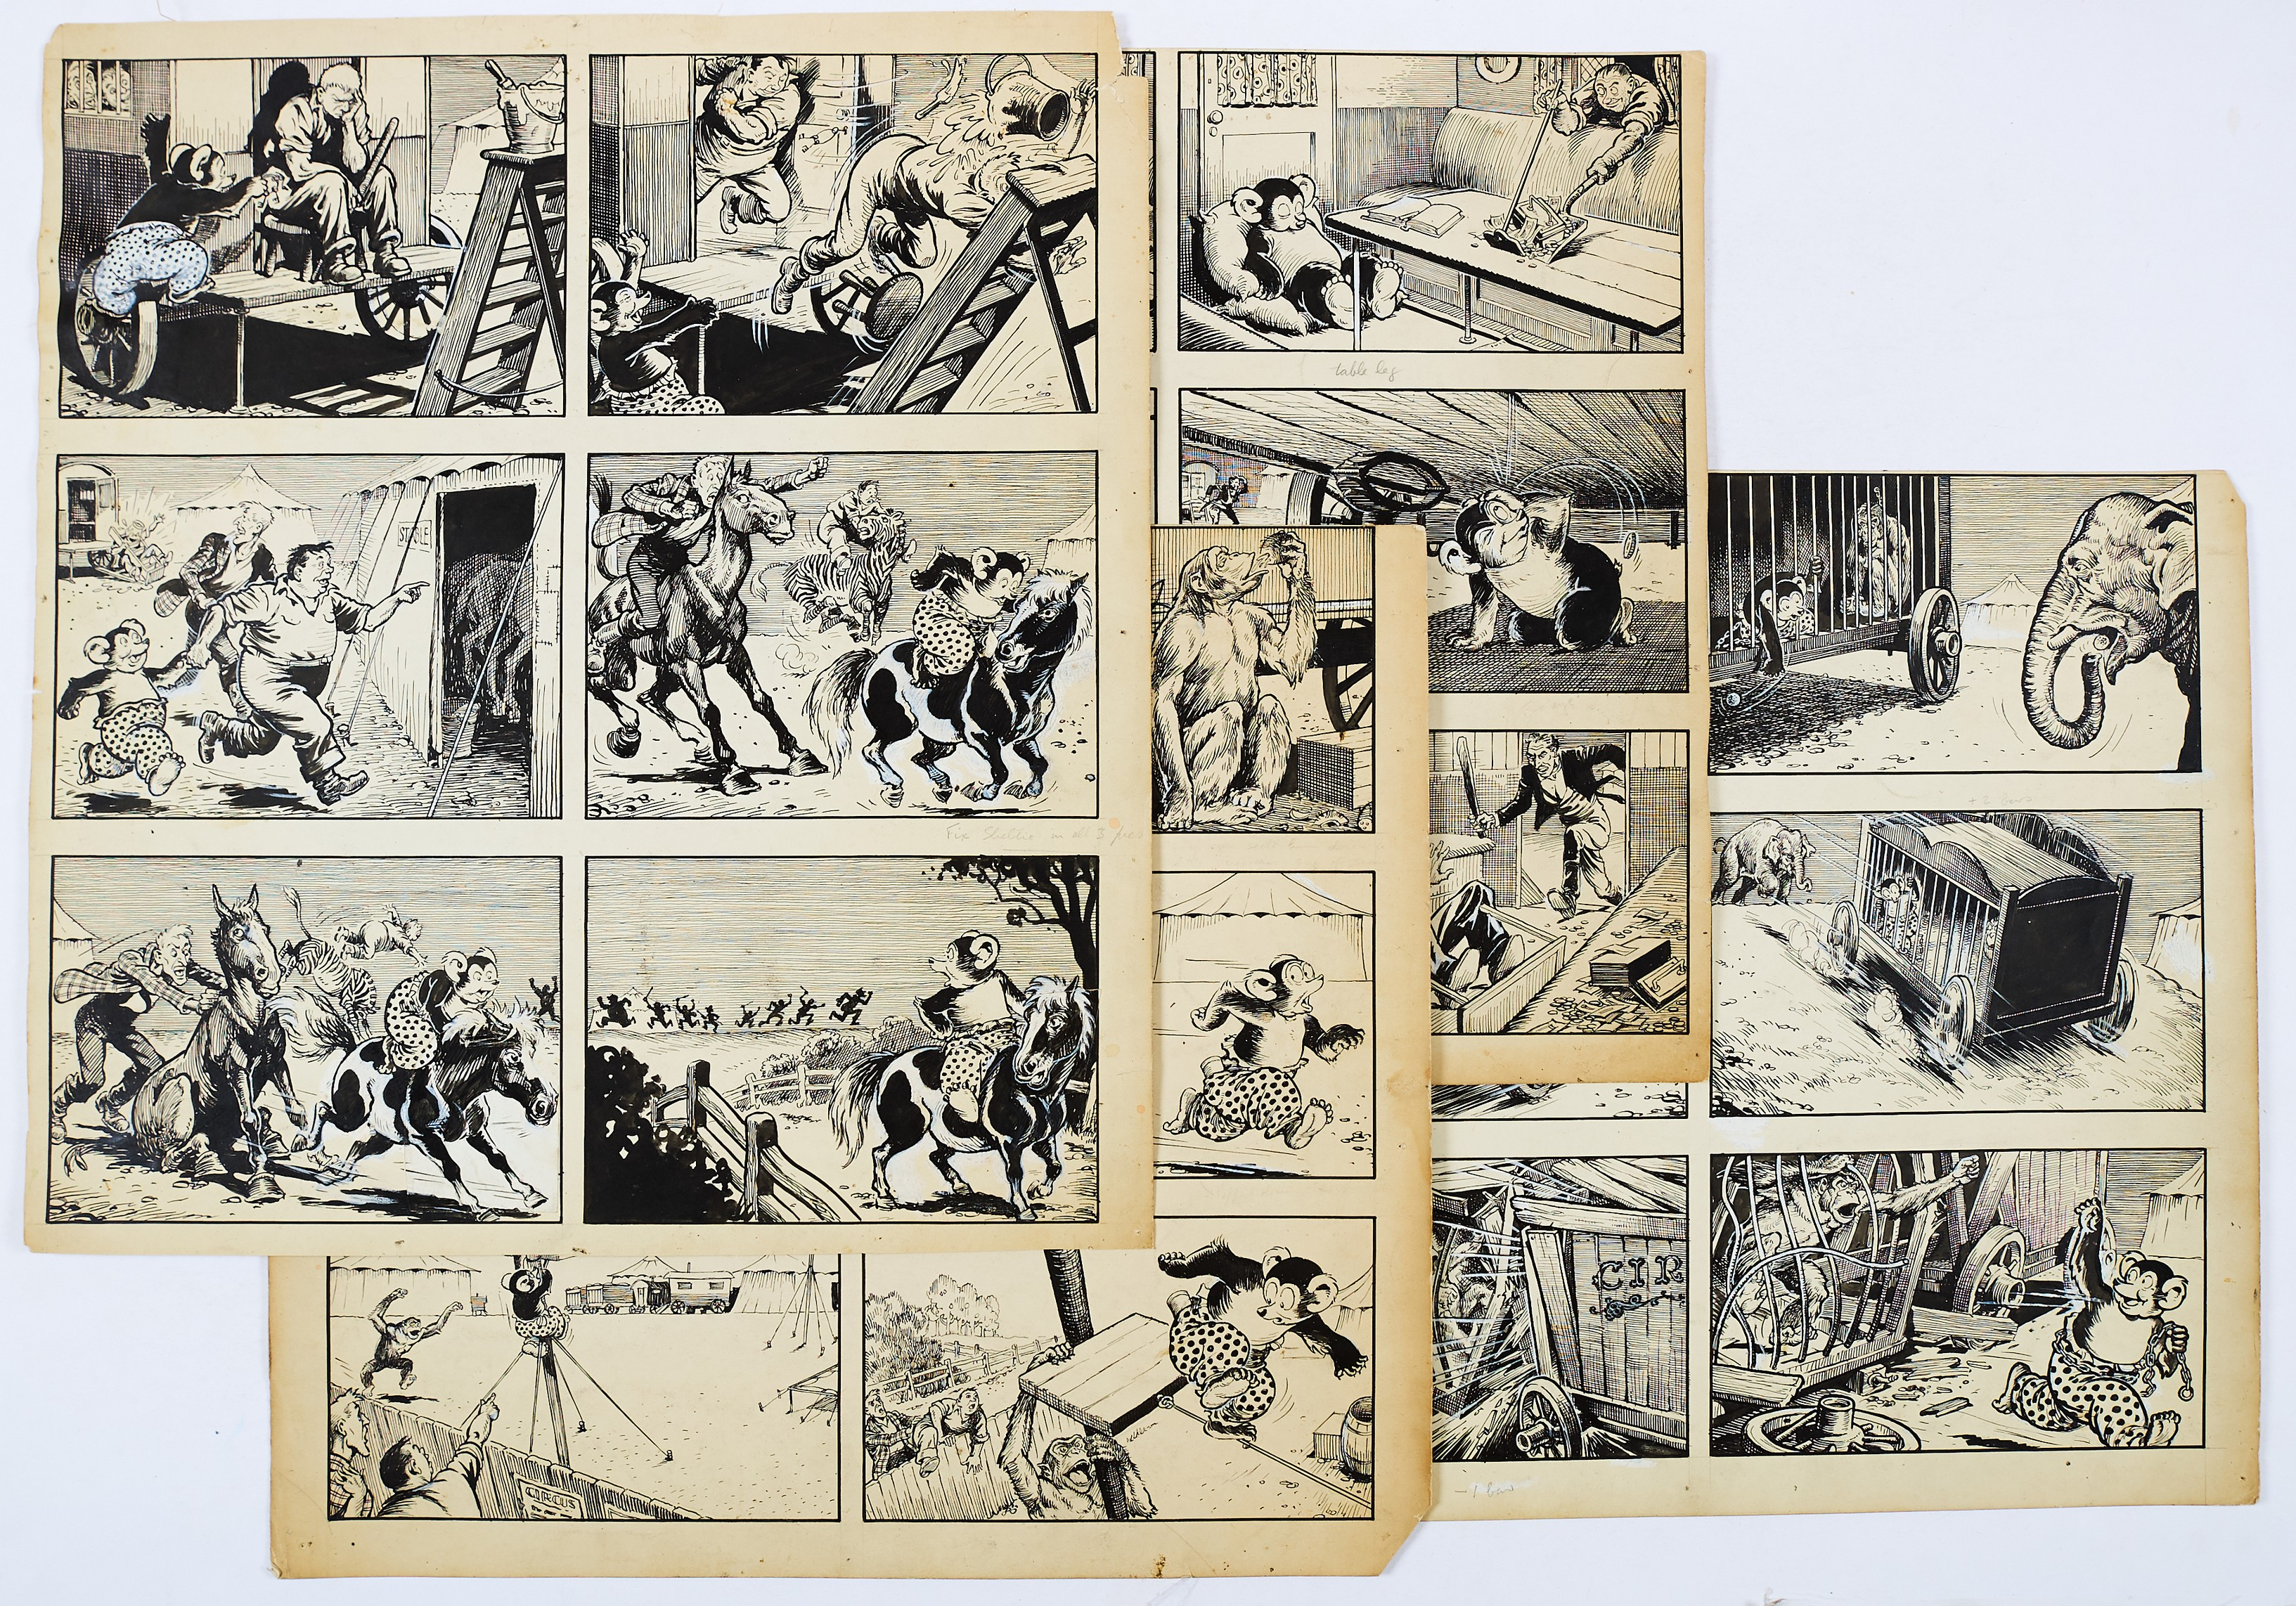 Lot 52 - Barney's Bear original 4 page artwork by George Ramsbottom for The Dandy (1950s). Barney's Bear